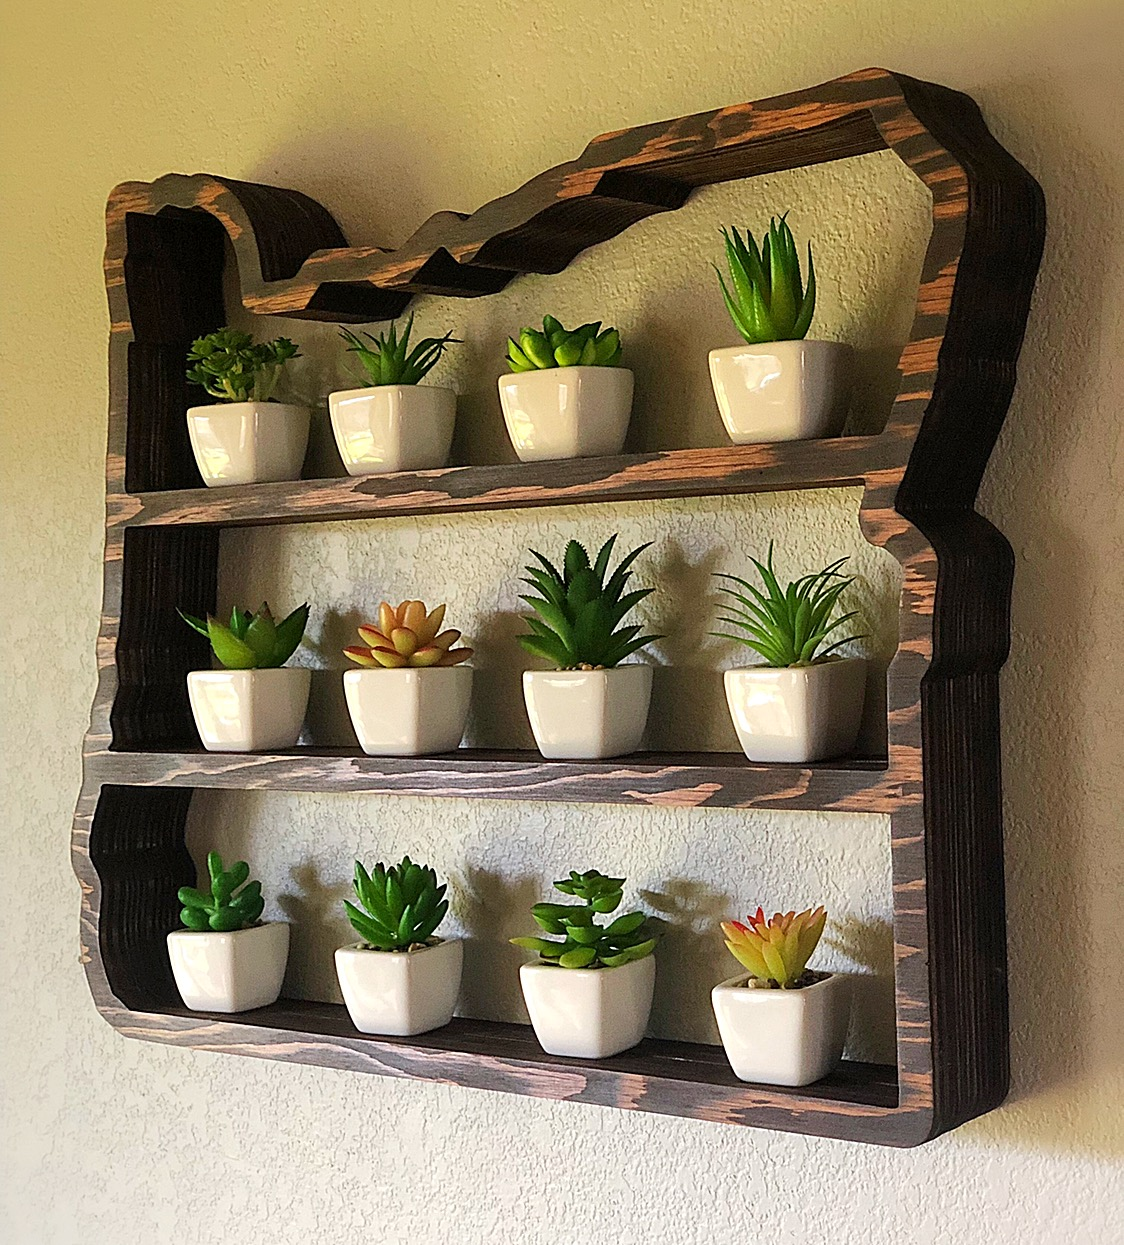 grow your herbs and succulents in style - Oregon succulent shelf